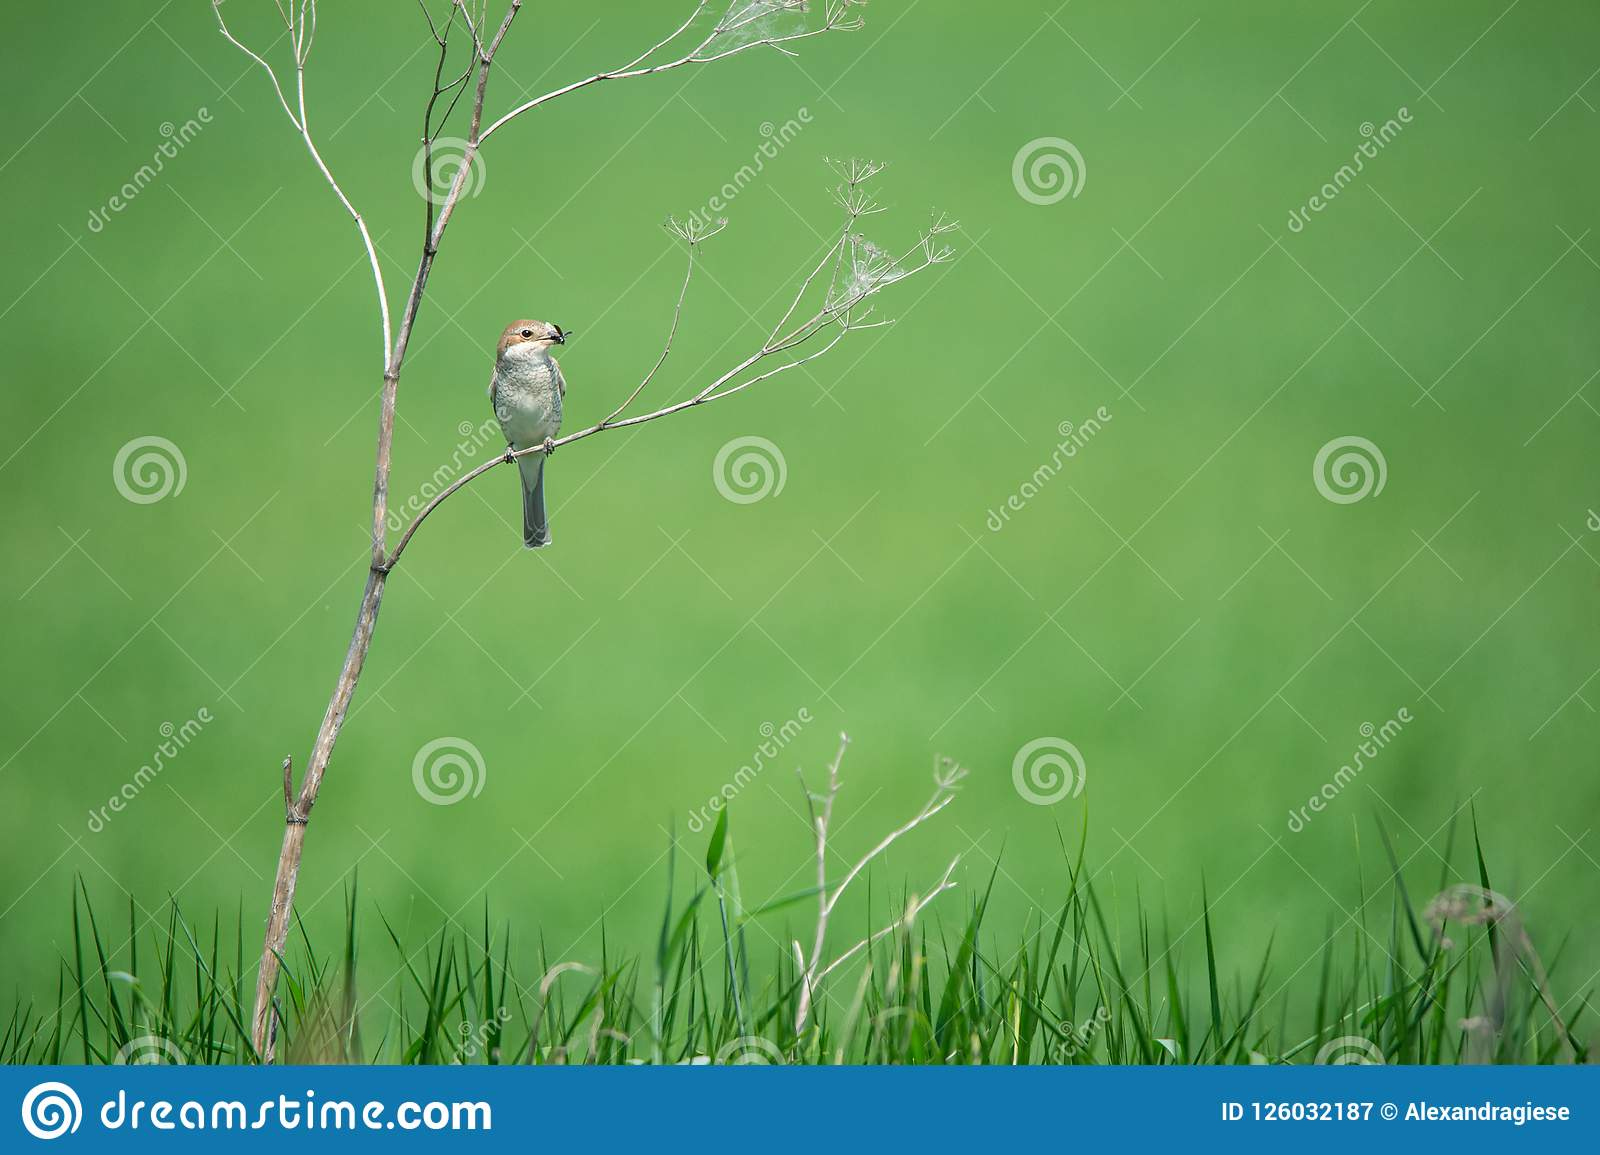 Female red backed shrike with an insect in the bill sitting on a fragile arid plant on a soft green nature background